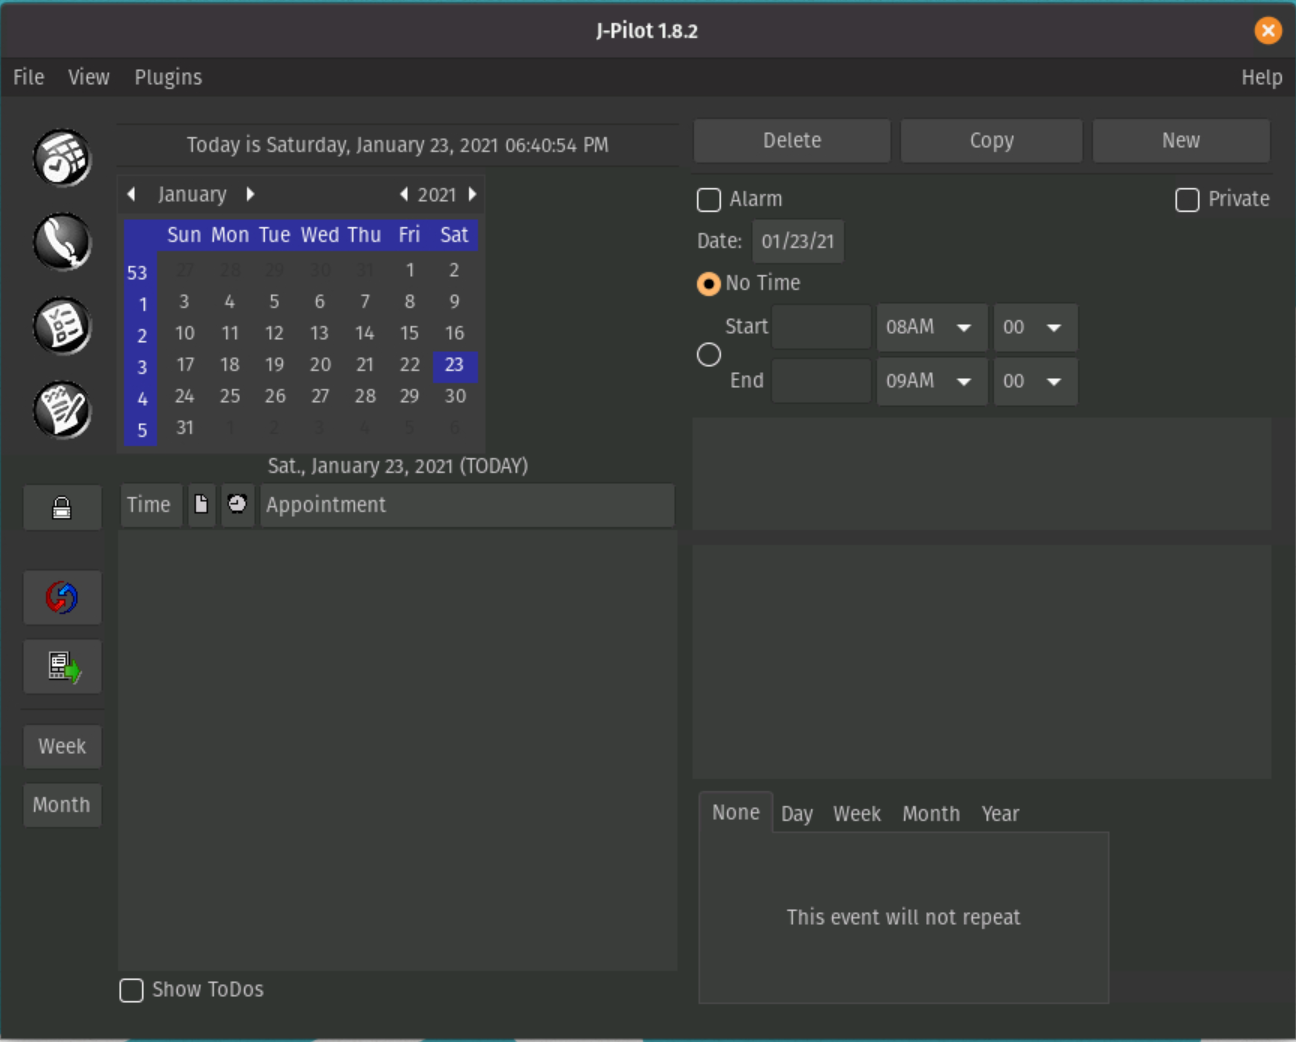 JPilot all in one organizer software interface